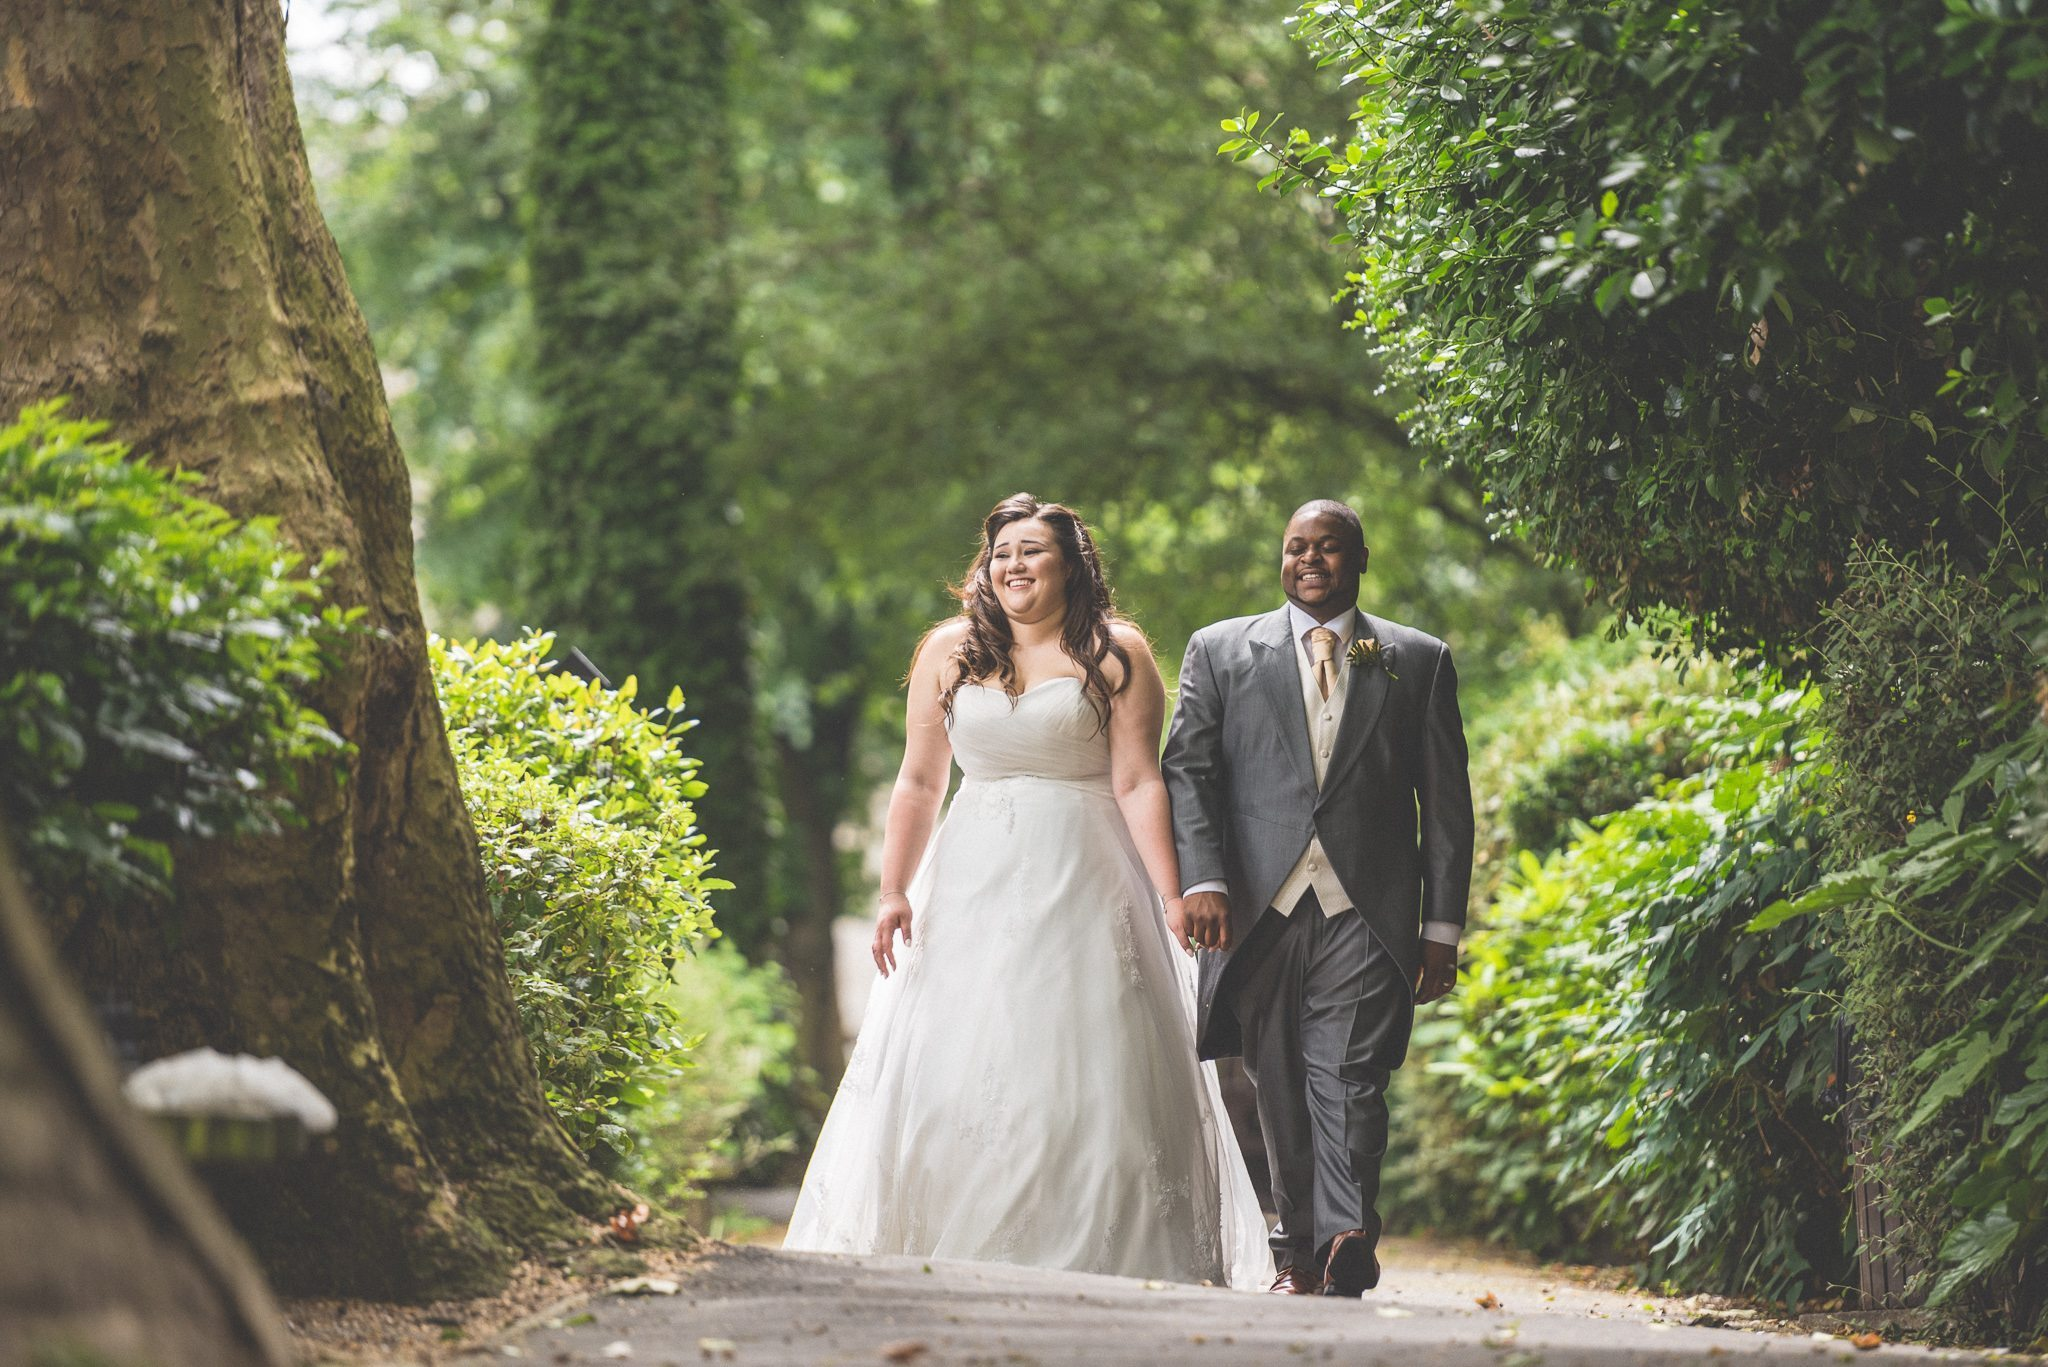 Bride and Groom walking down an alley and laughing